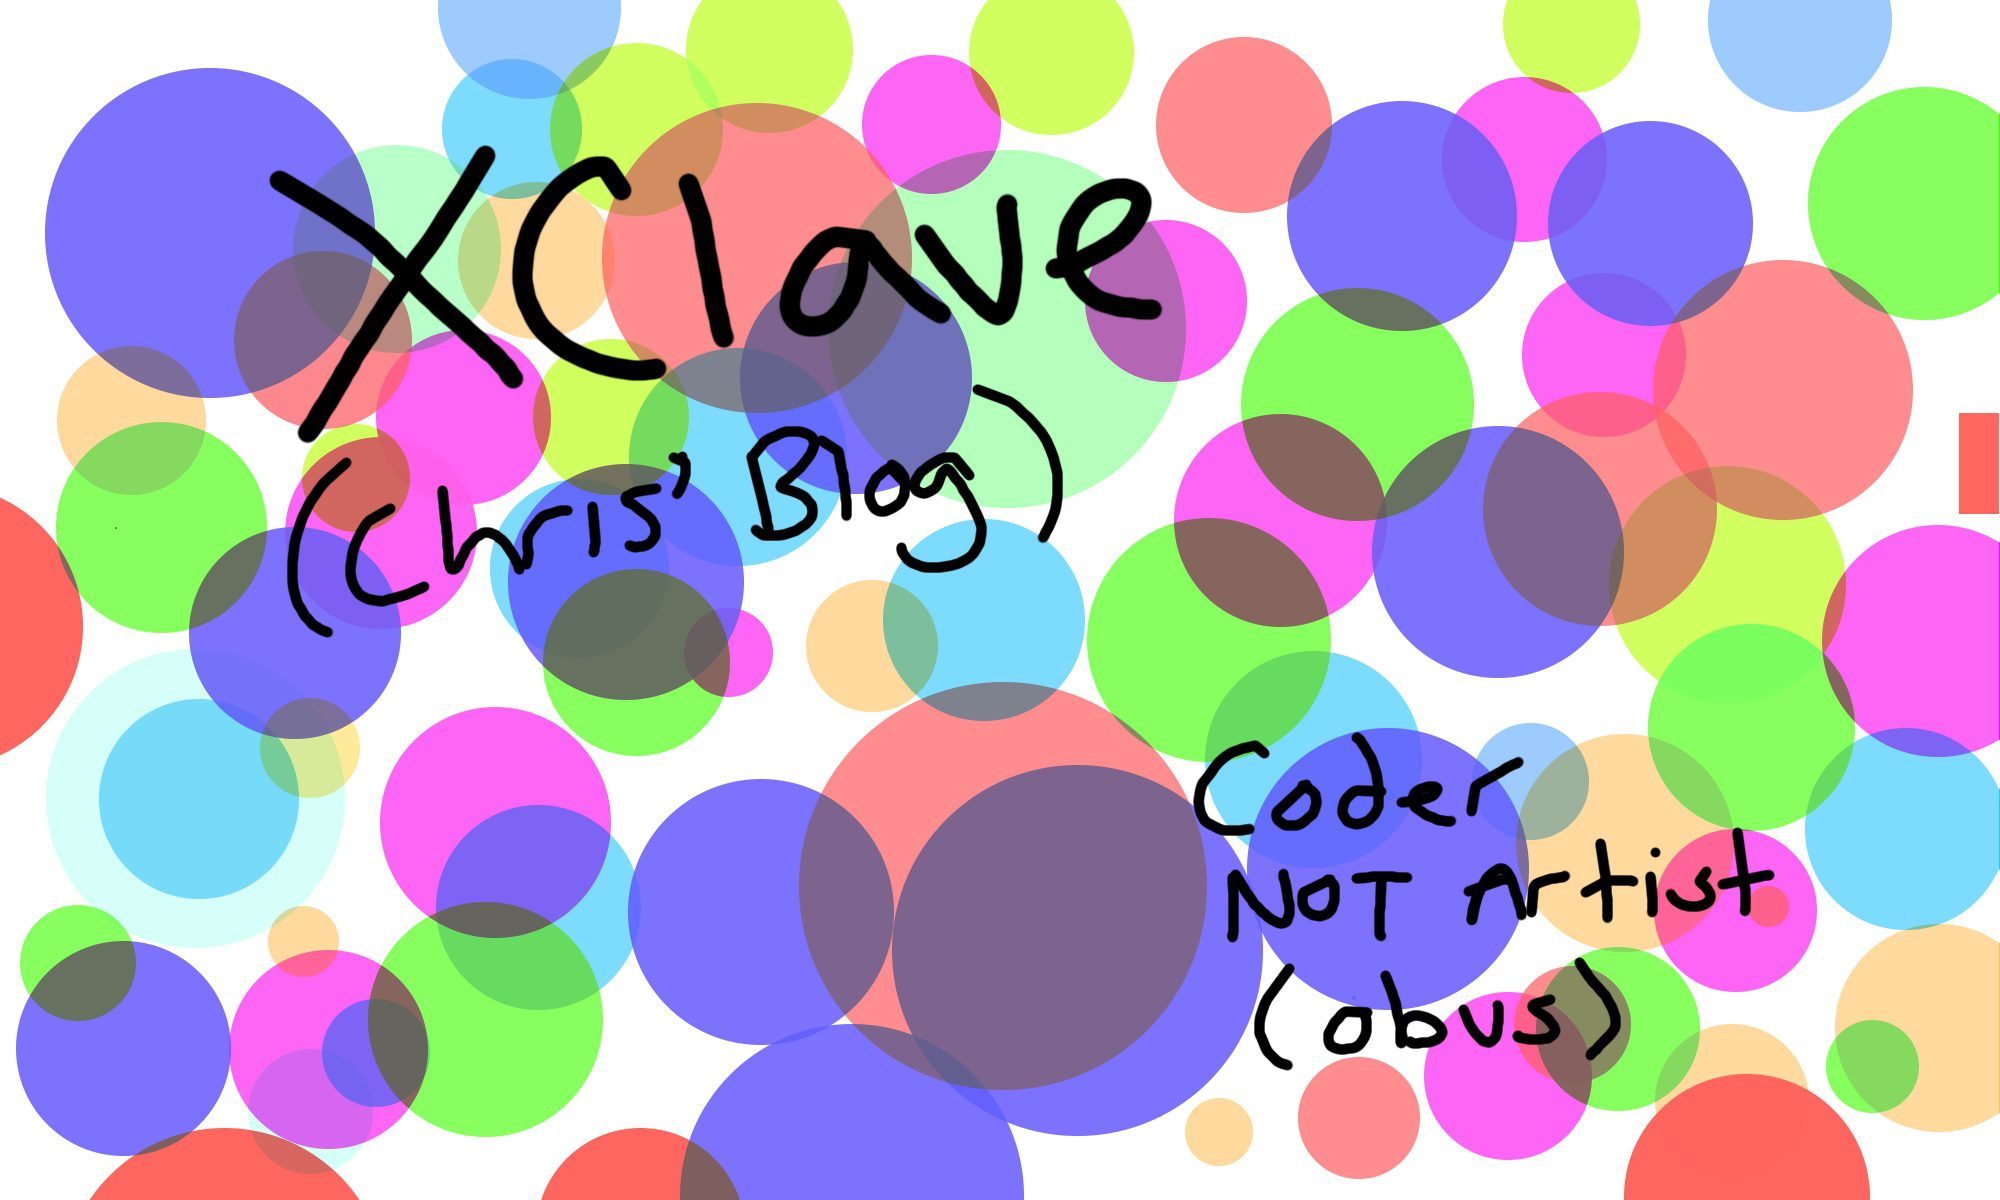 XClave